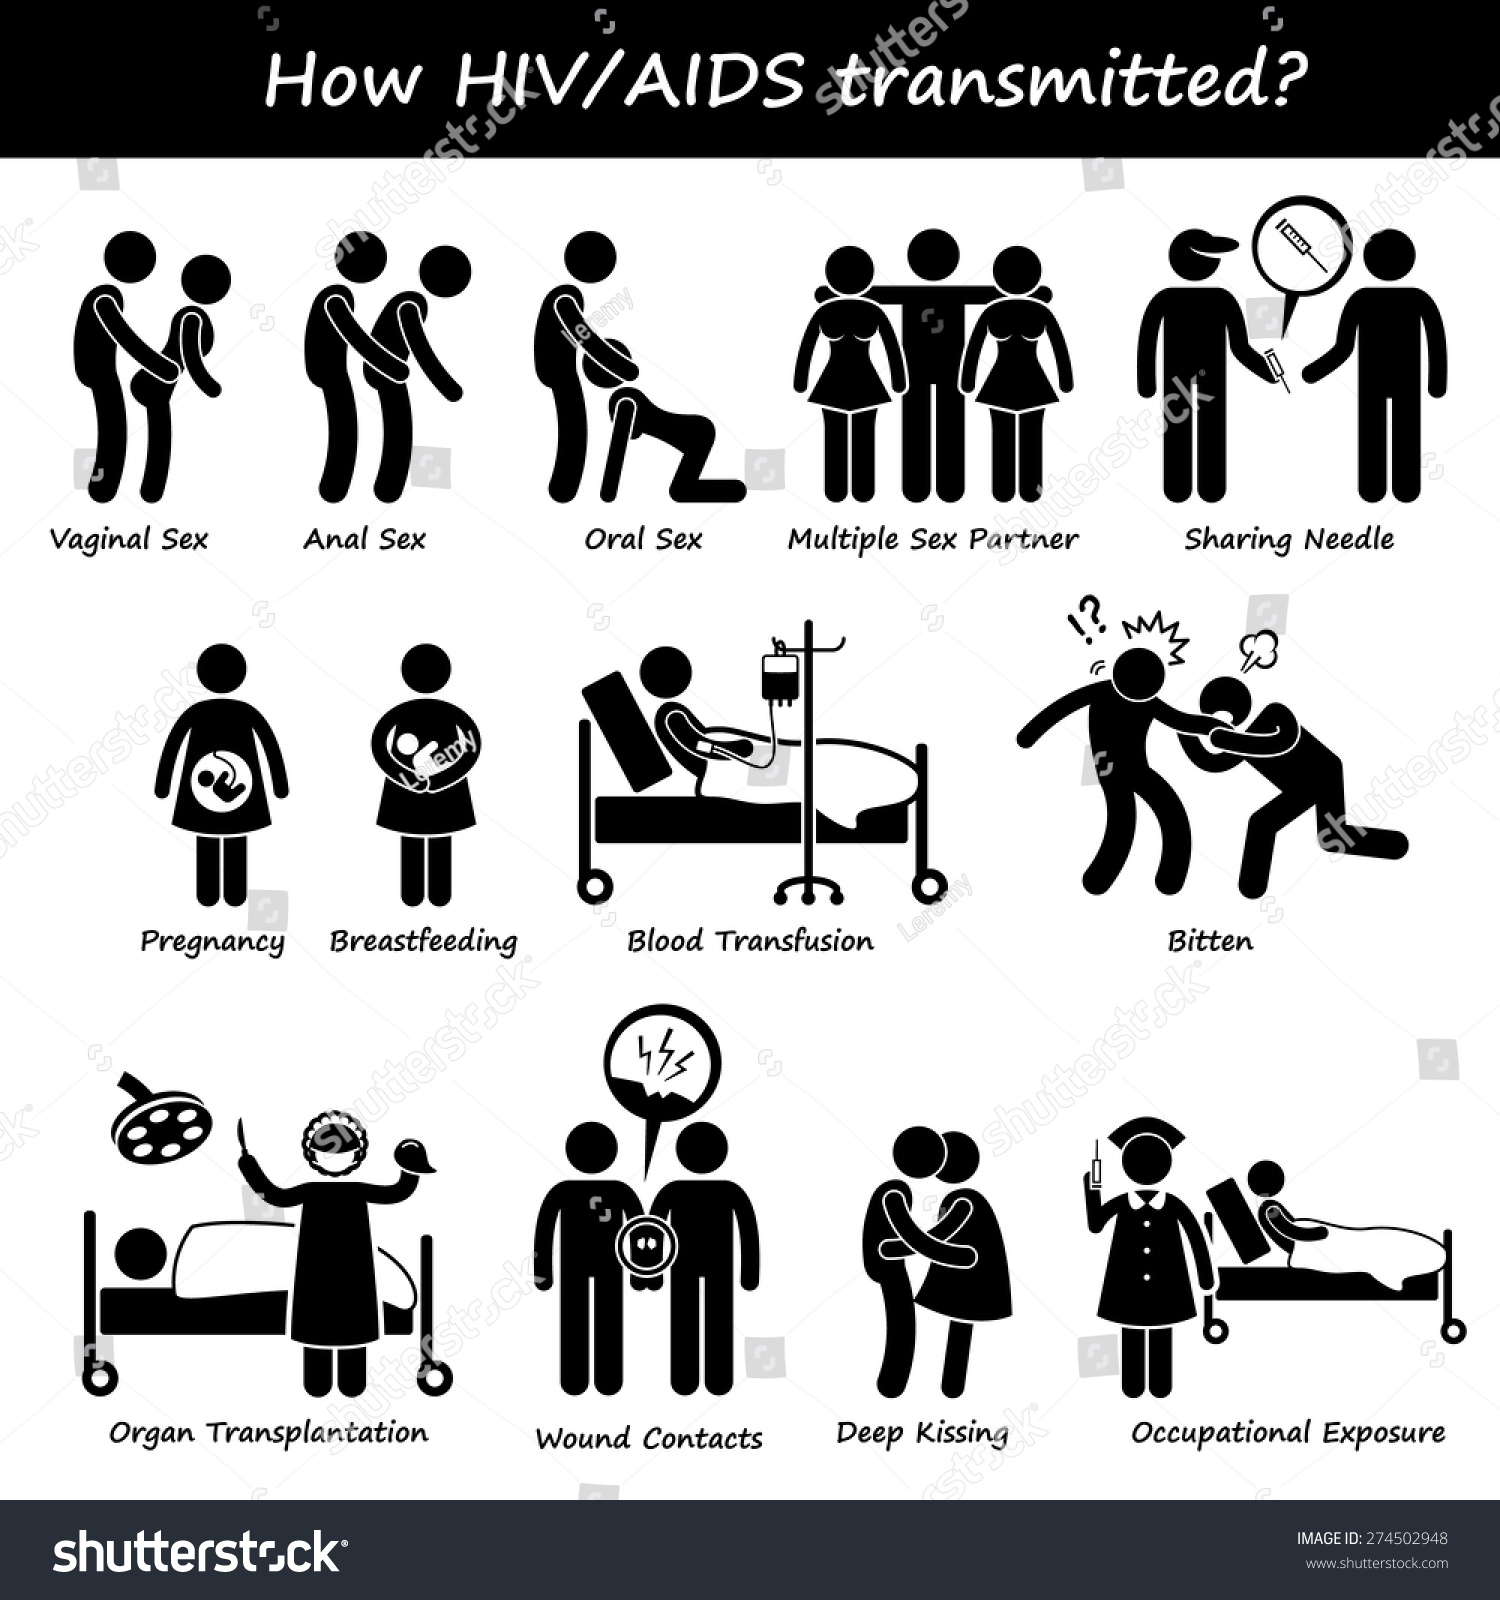 the spread of aids In 1981, the first reported cases of acquired immune deficiency syndrome (aids) came to light in the united states after many years the author of and the band played on insisted that it was ridiculous to blame just one man for the spread of aids 9 at the same time.